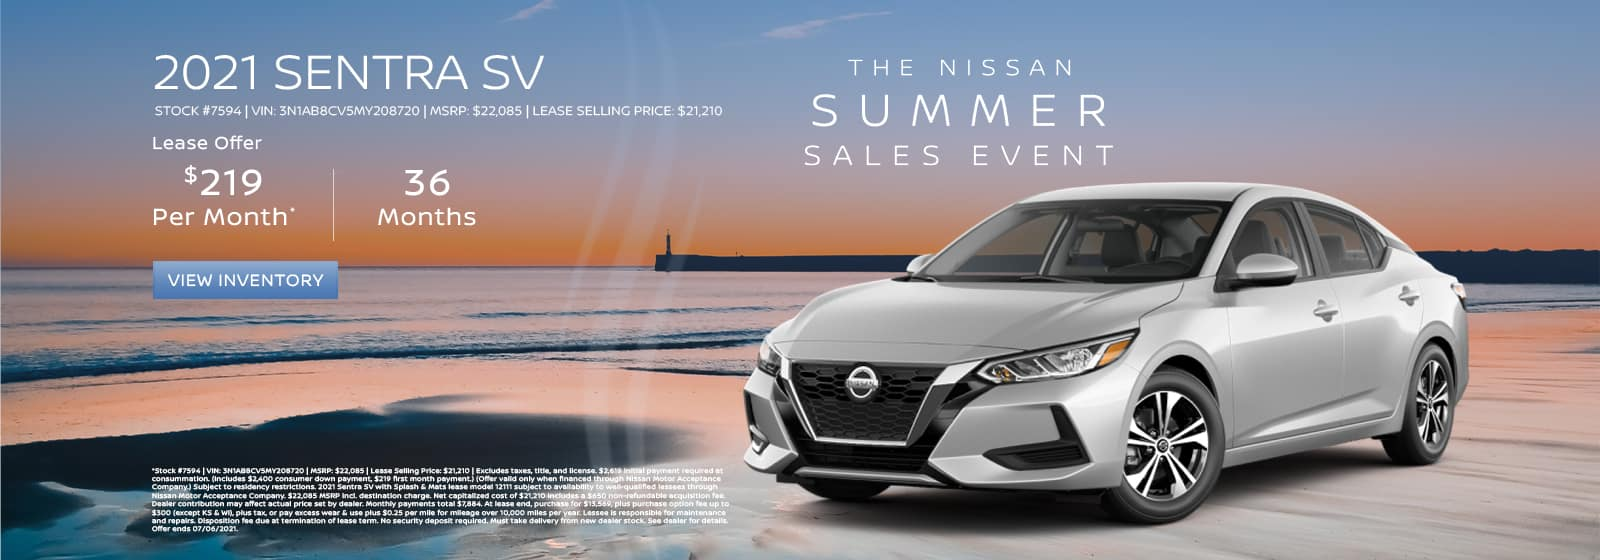 Lease a new 2021 Nissan Sentra for $219 per month for 36 months.